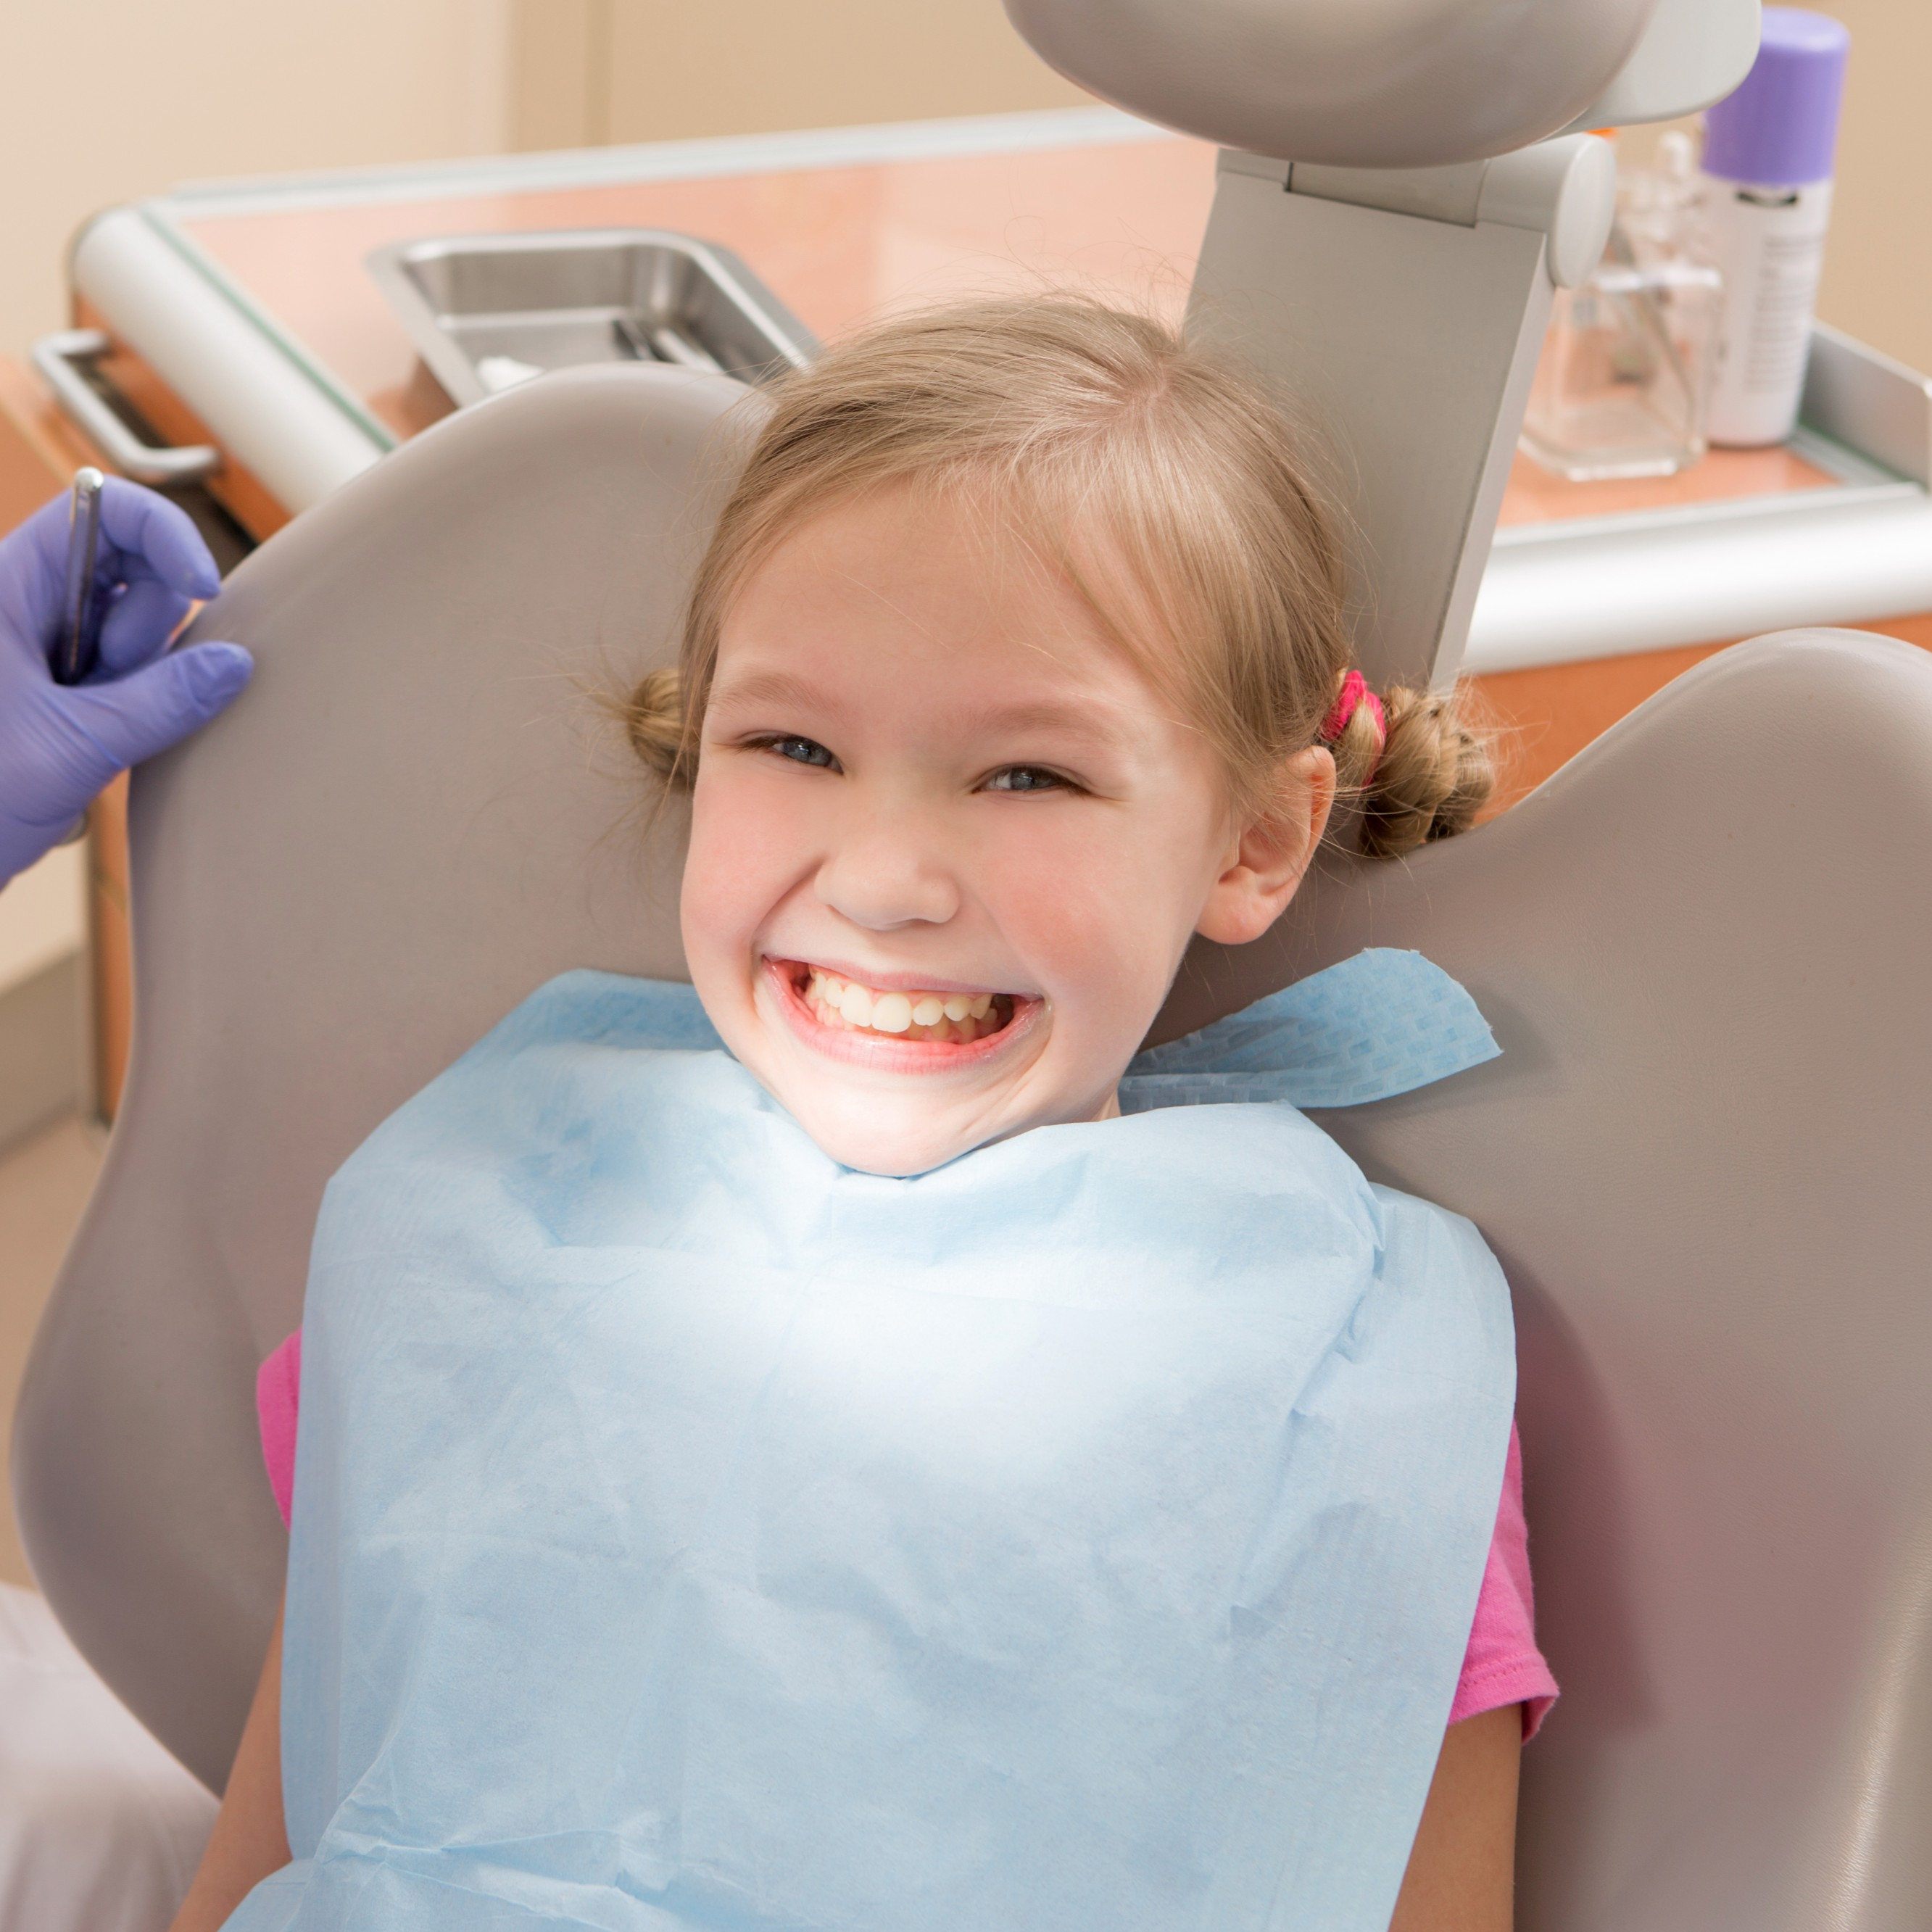 childresn's dental services